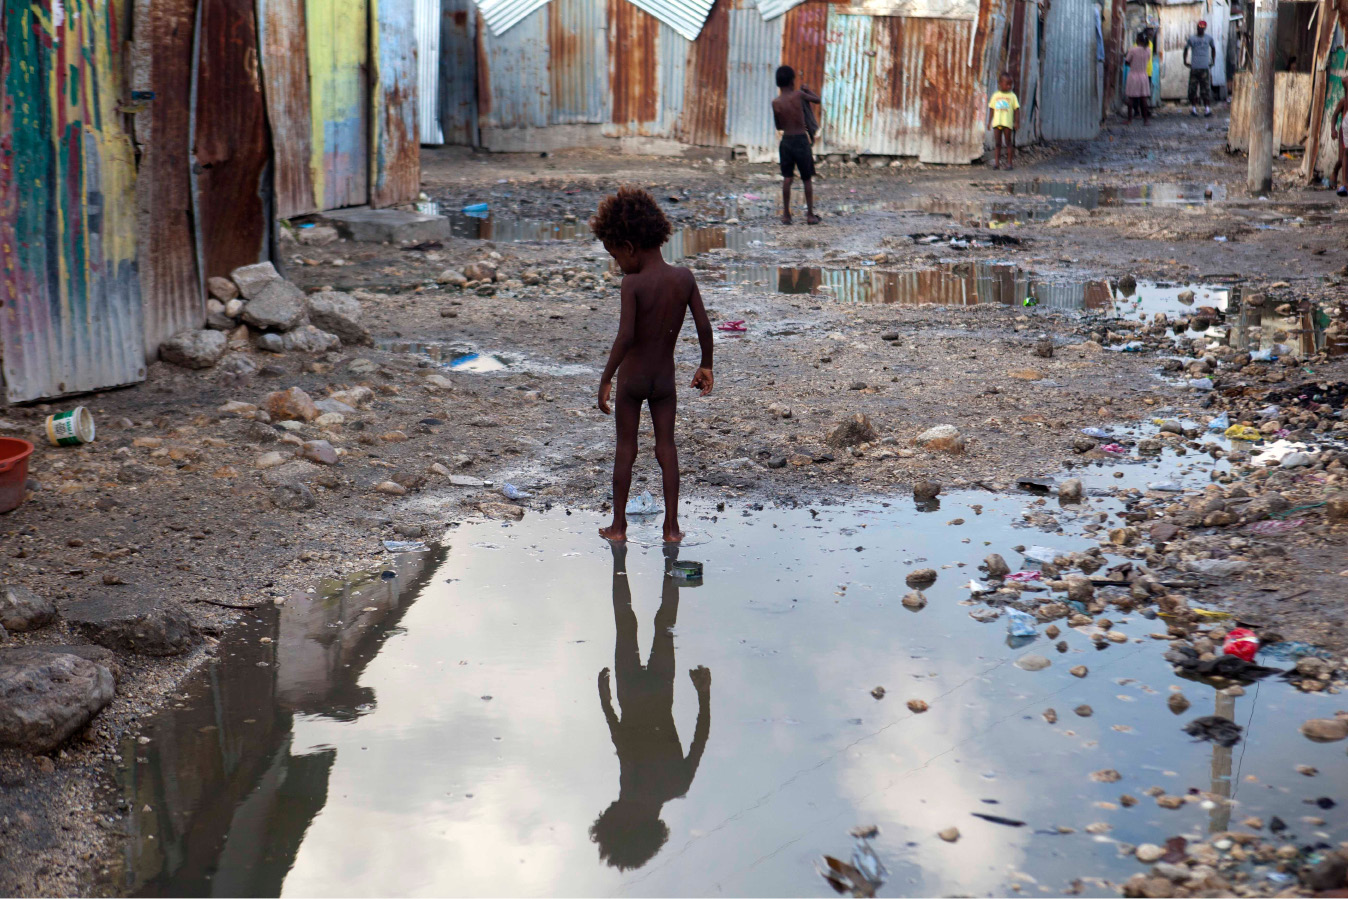 A child plays in a puddle in the seaside slum of Port-au-Prince, Haiti, Wednesday, Sept. 6, 2017. Heavy rain and 185-mph winds lashed the Virgin Islands and Puerto Rico